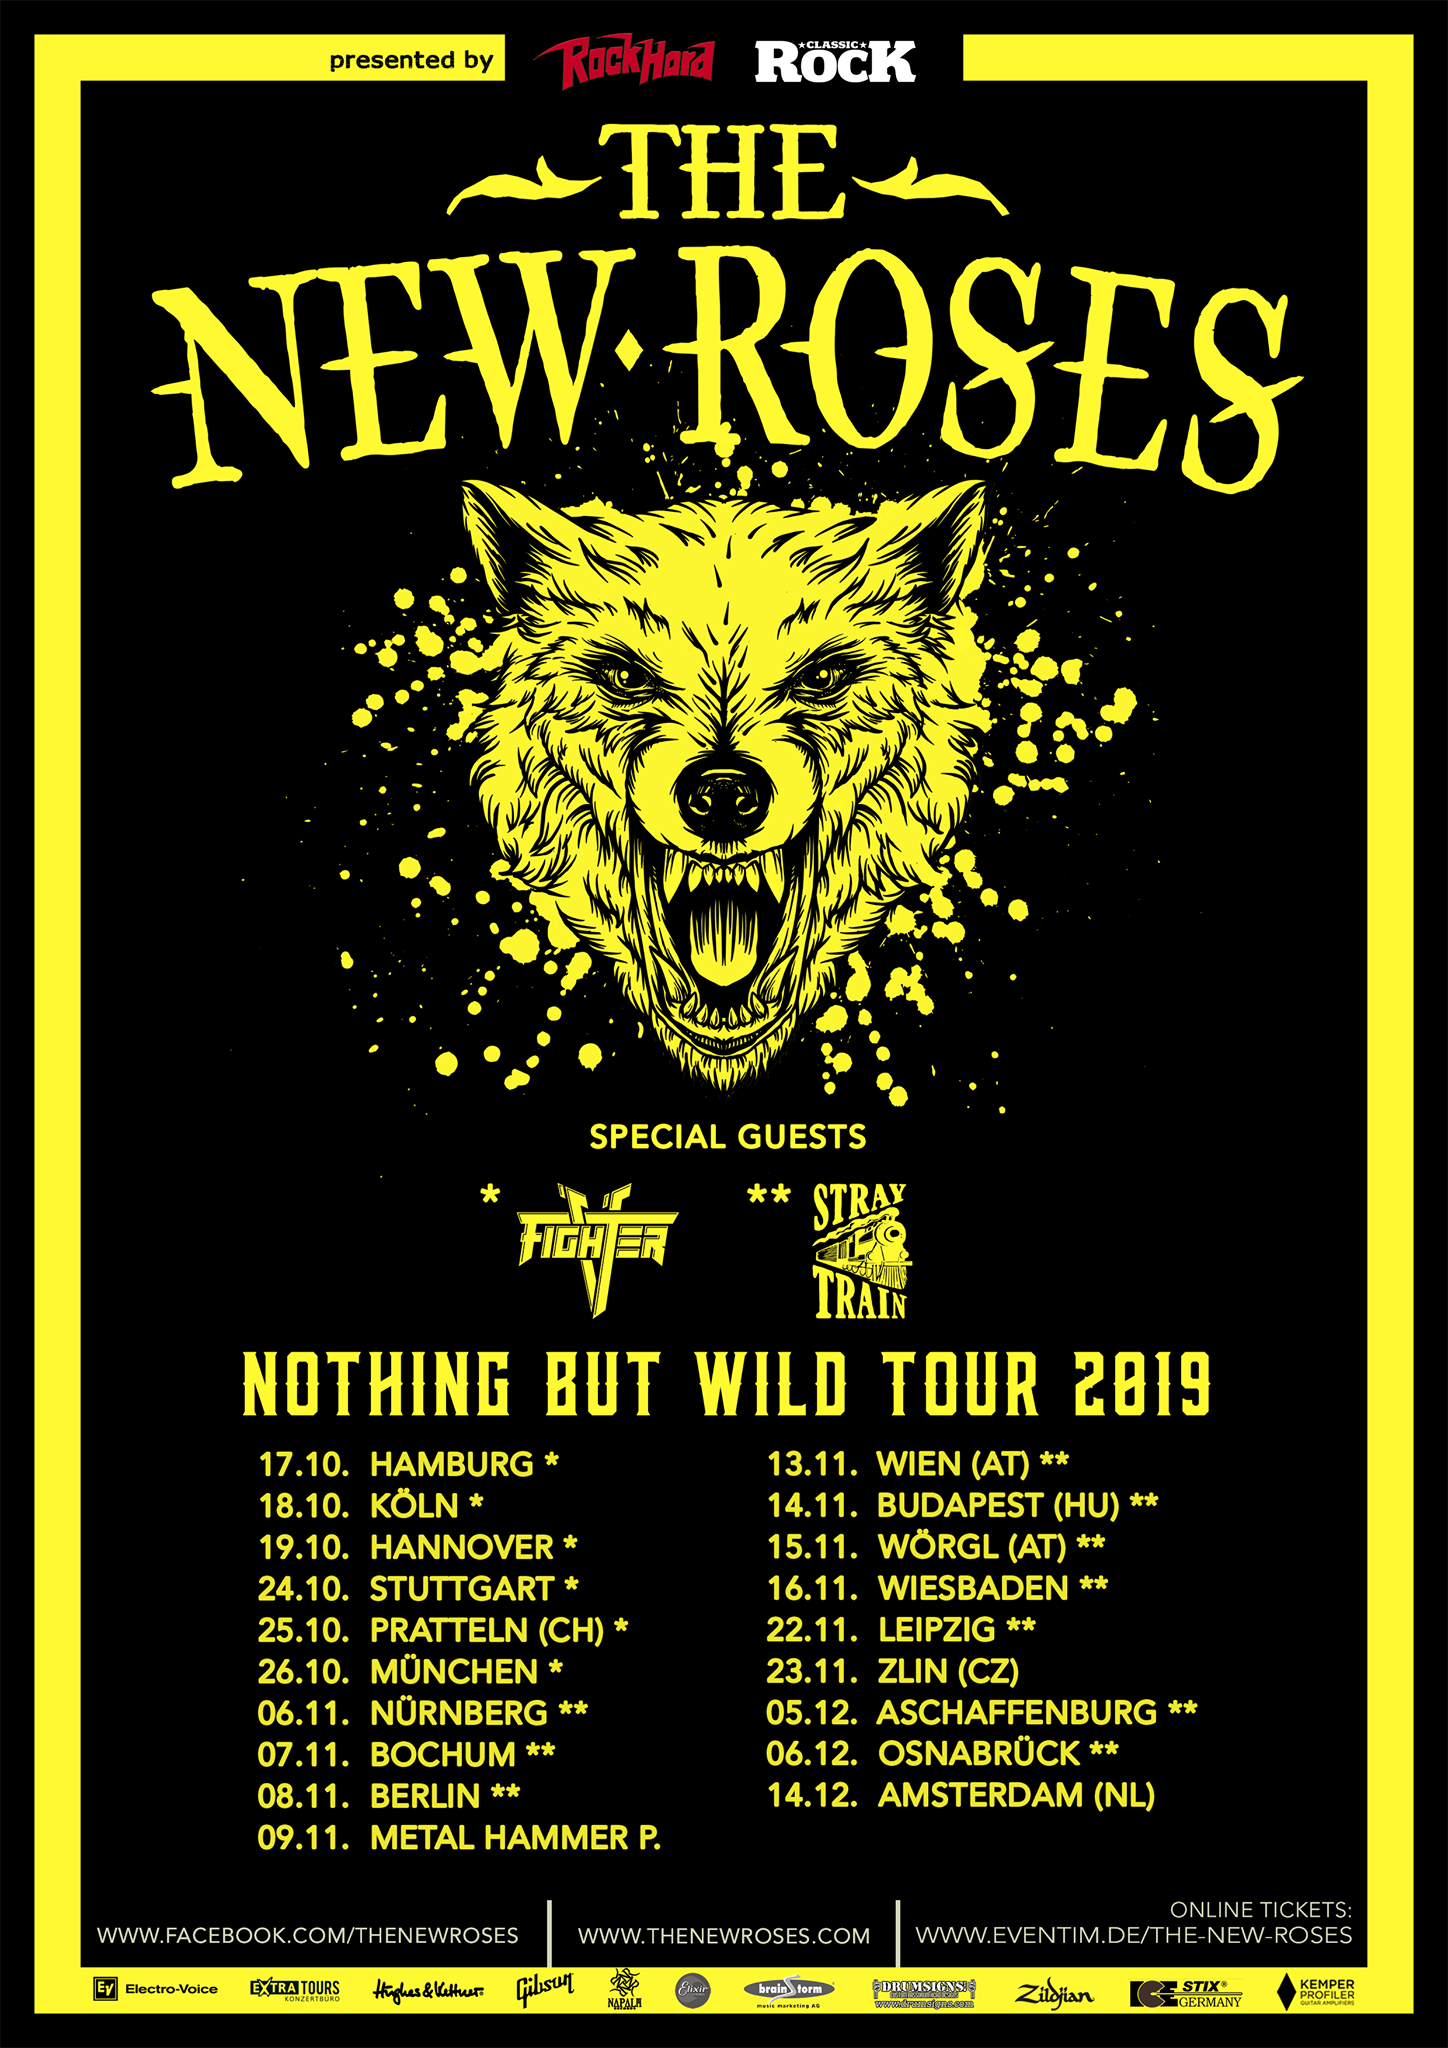 The New Roses - Nothing But Wild Tour 2019